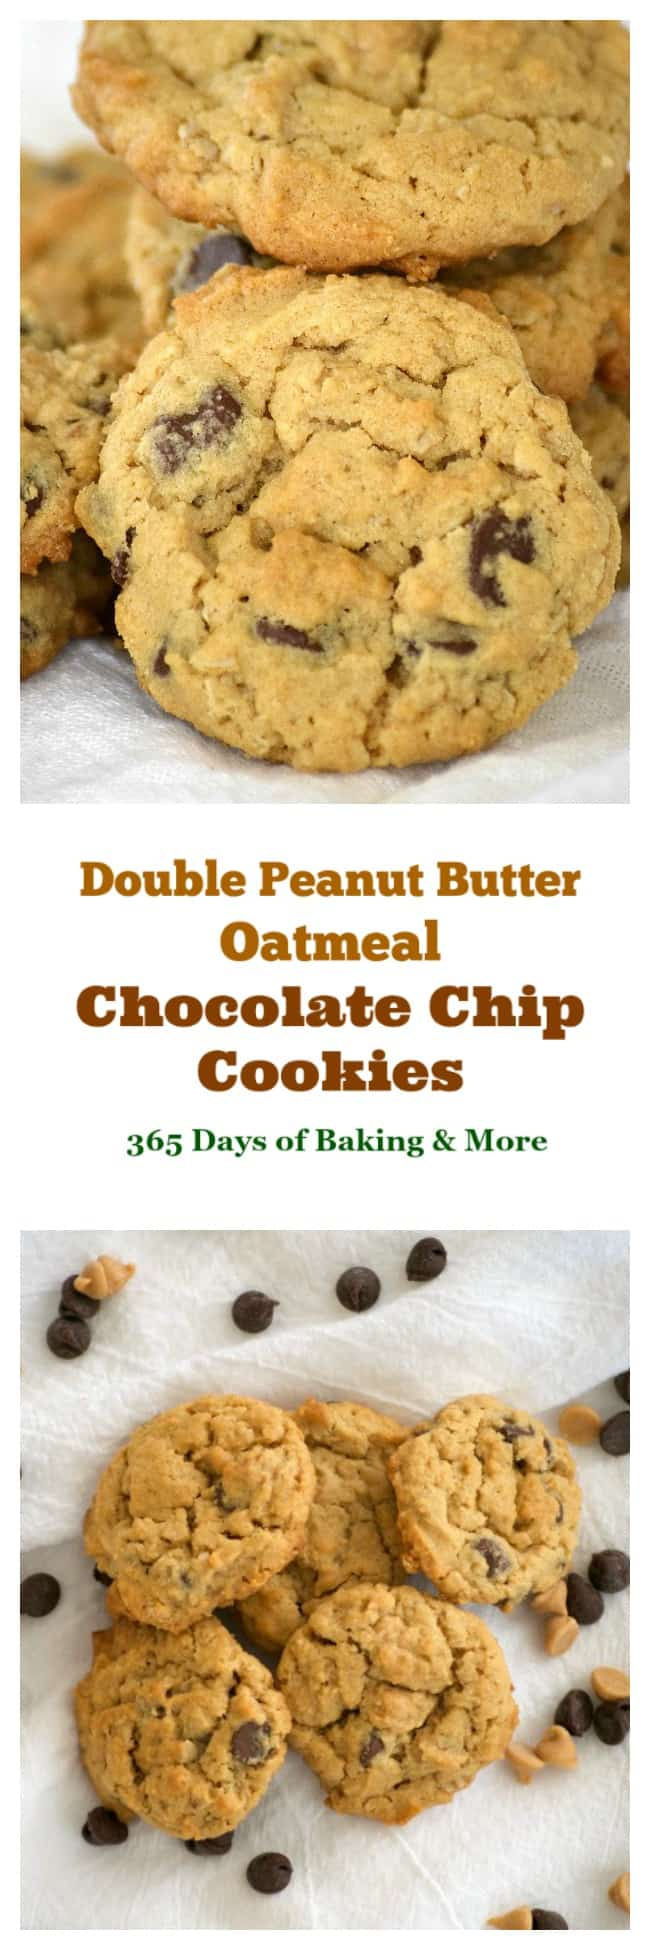 These Double Peanut Butter Oatmeal Chocolate Chip Cookies are bursting with peanut butter flavor and just a hint of chocolate. The perfect midnight snack!